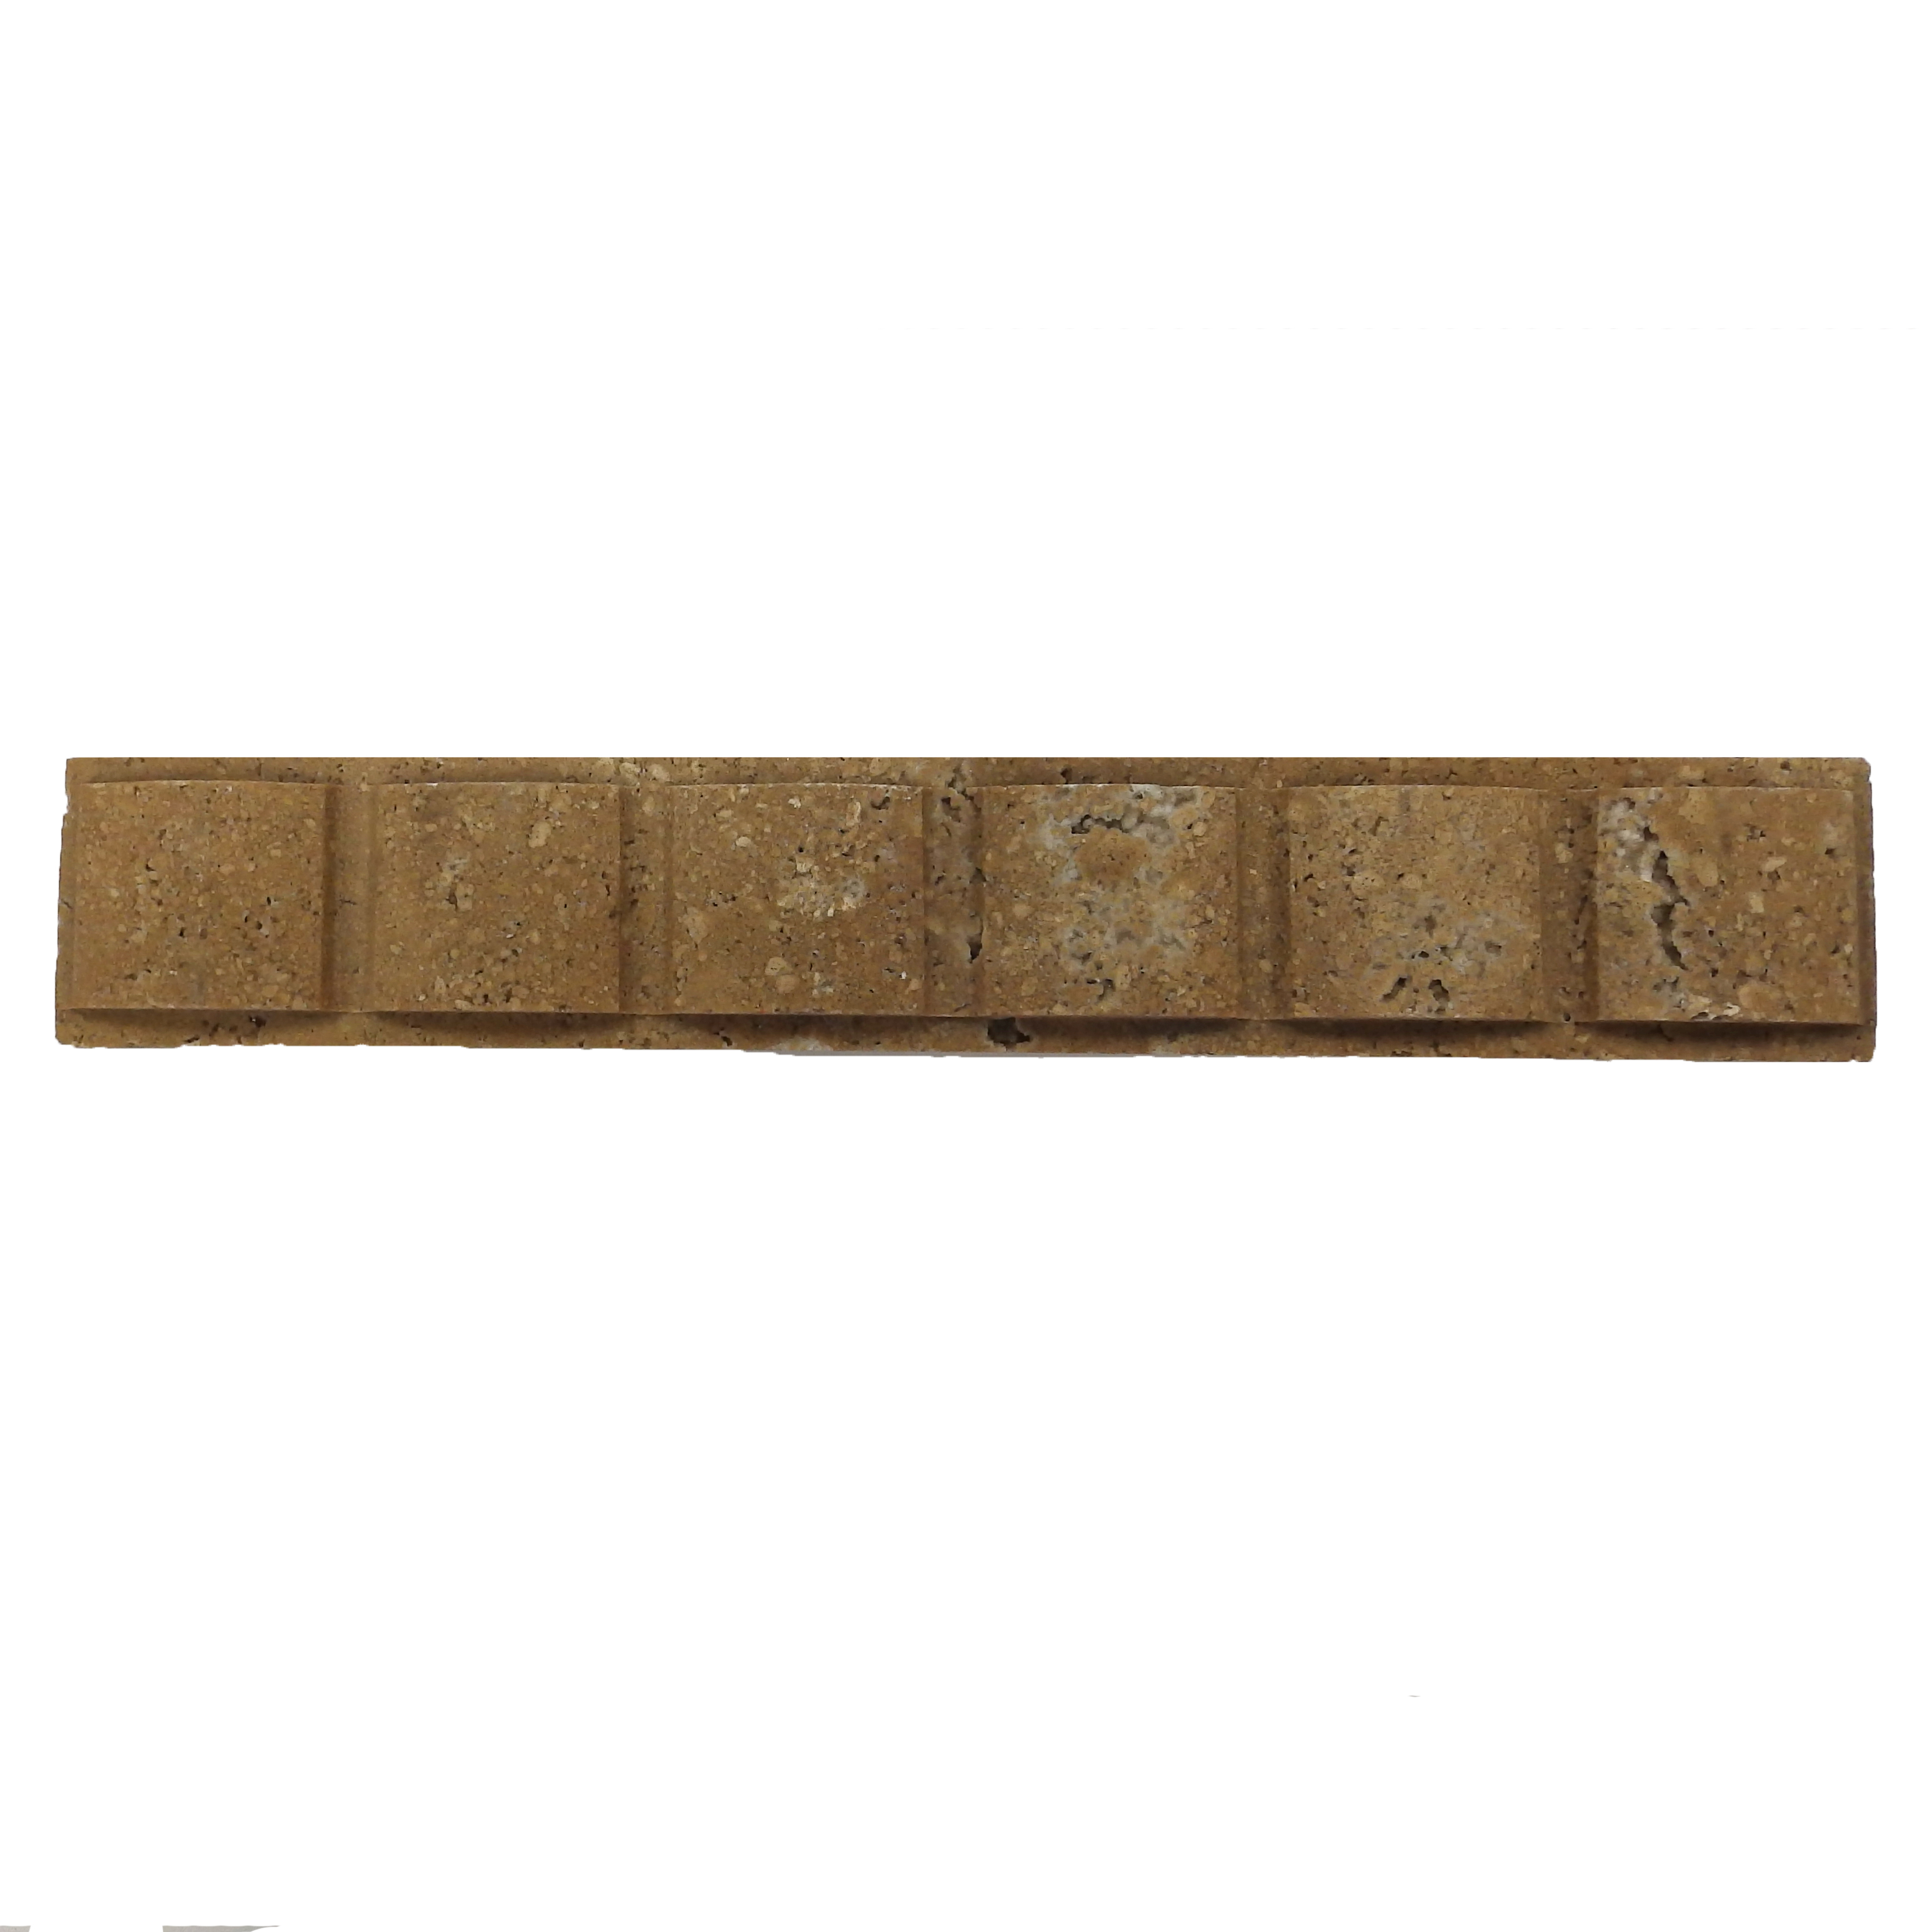 Item #6187 - Noce Bow Pattern Travertine Image